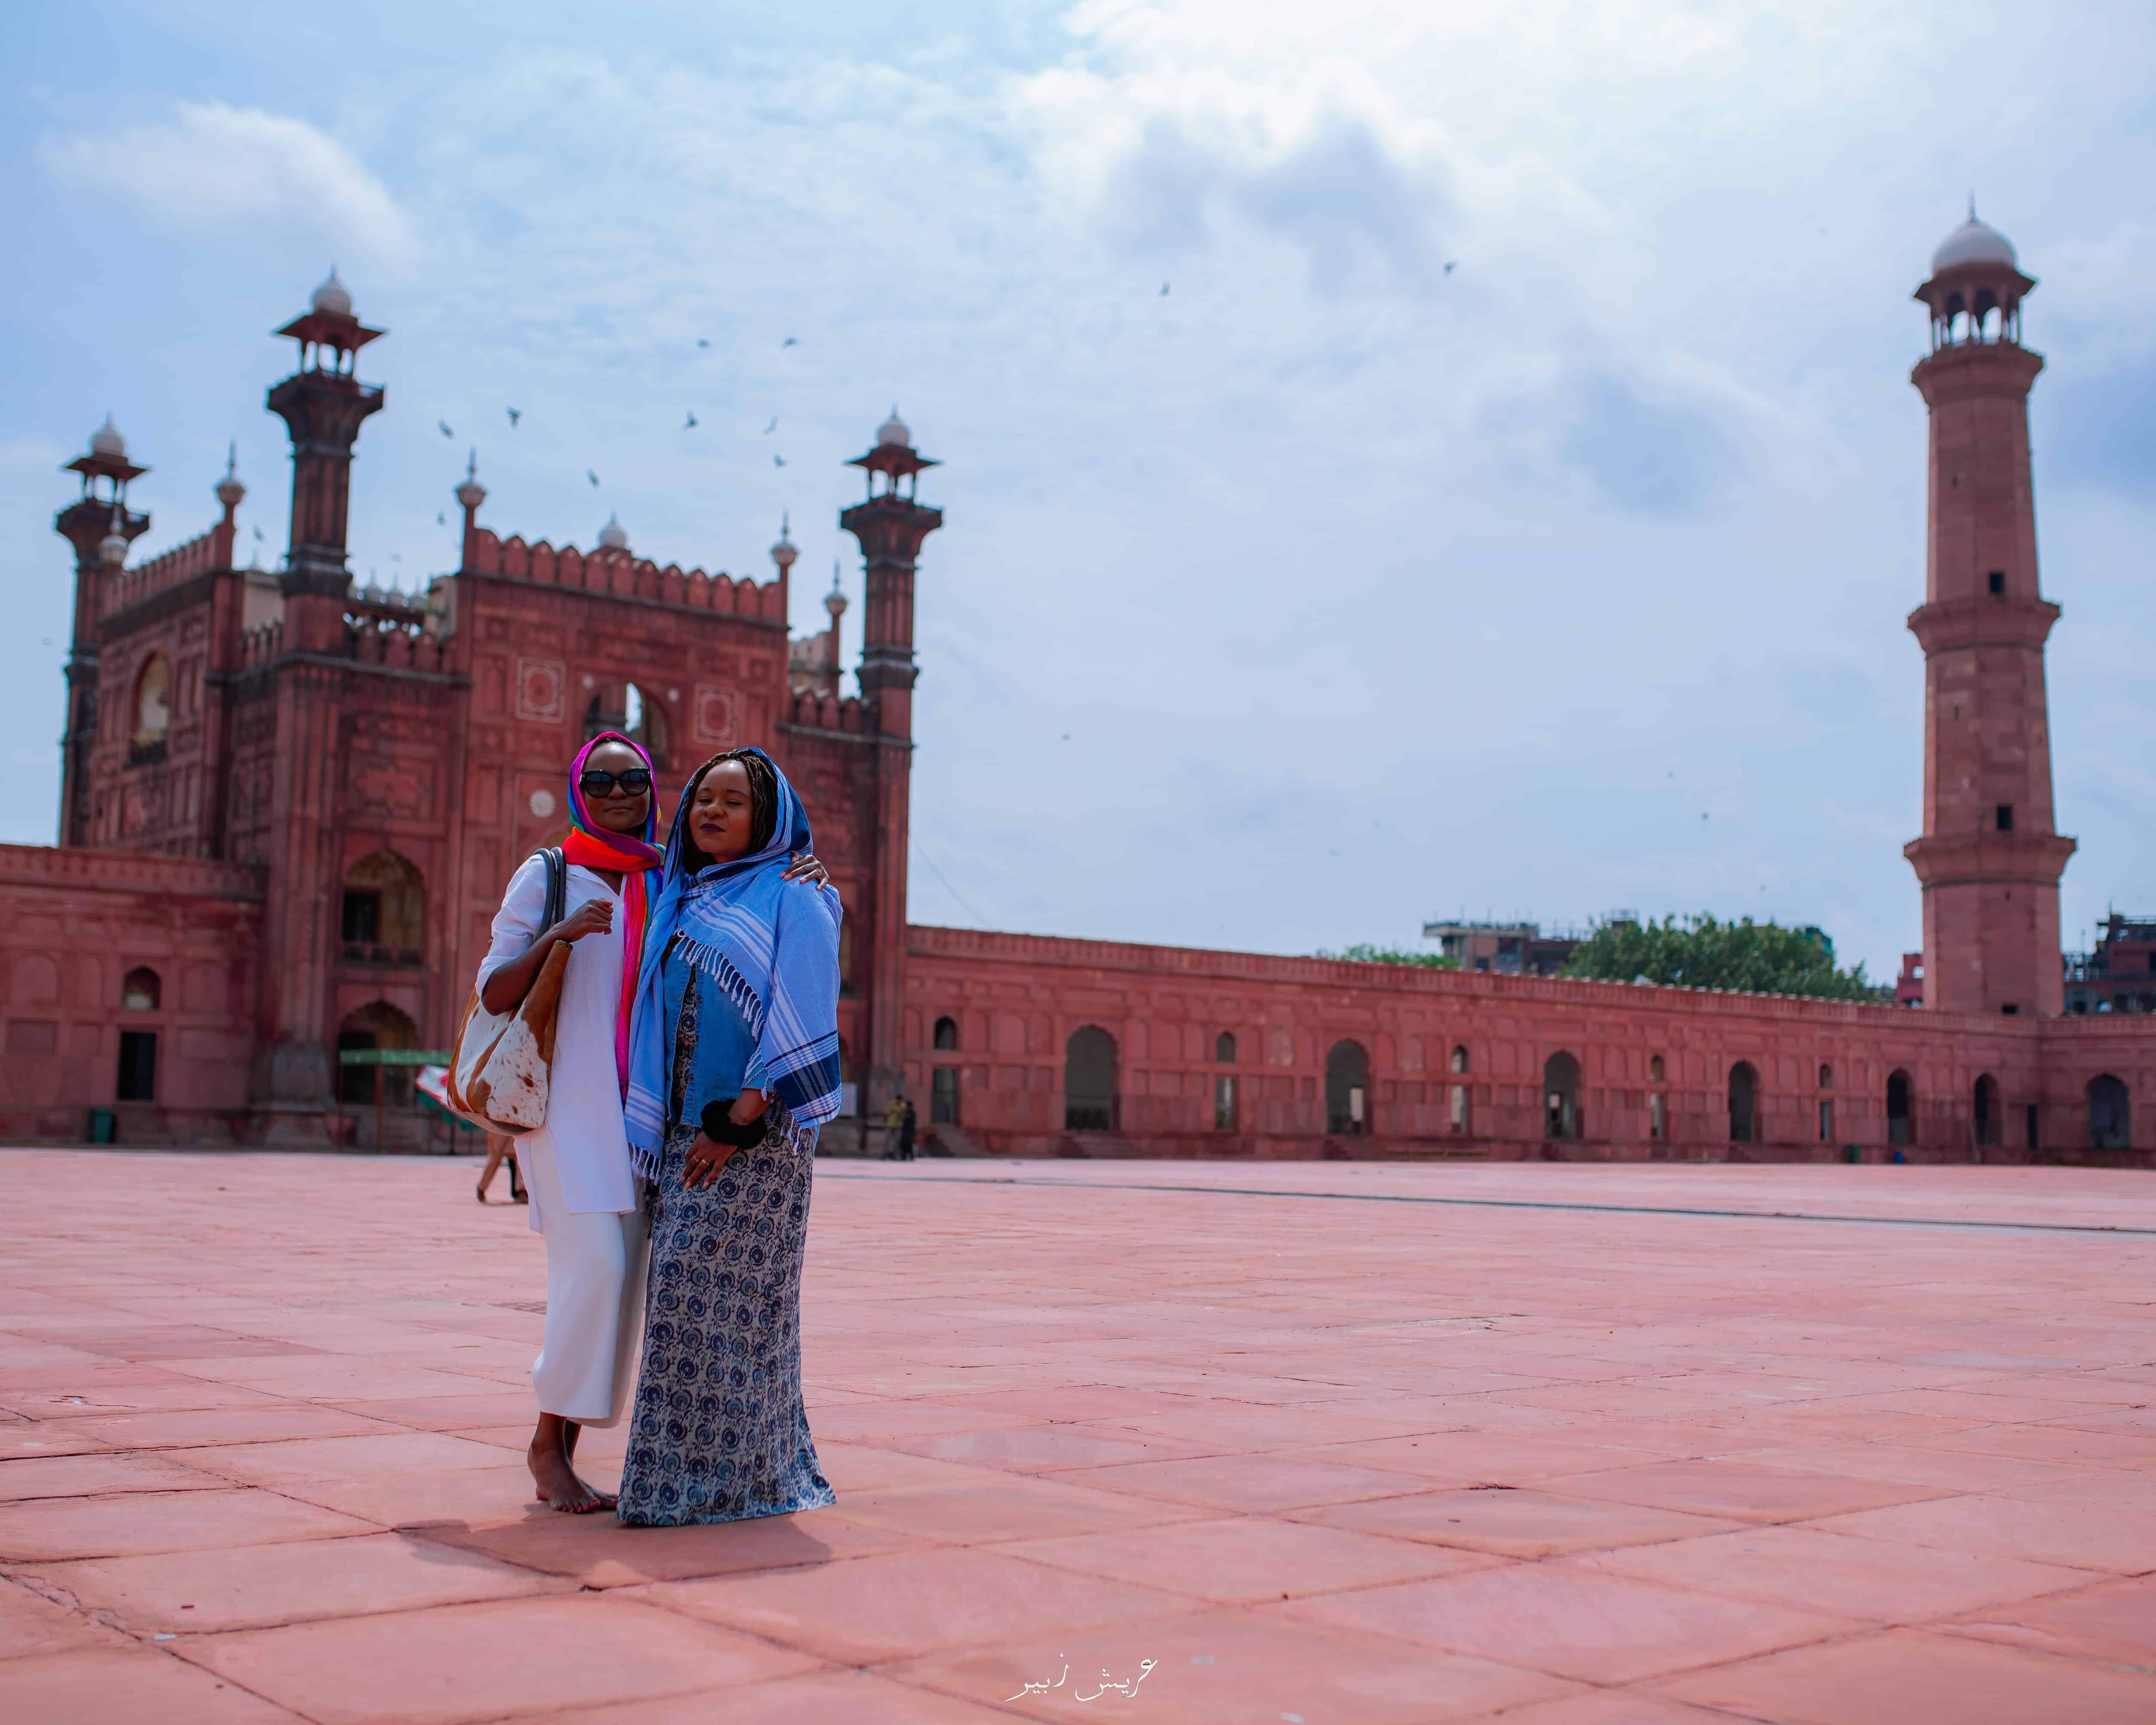 Badshahi Mosque, Lahore Walled City Pakistan constructed in 1671-1673